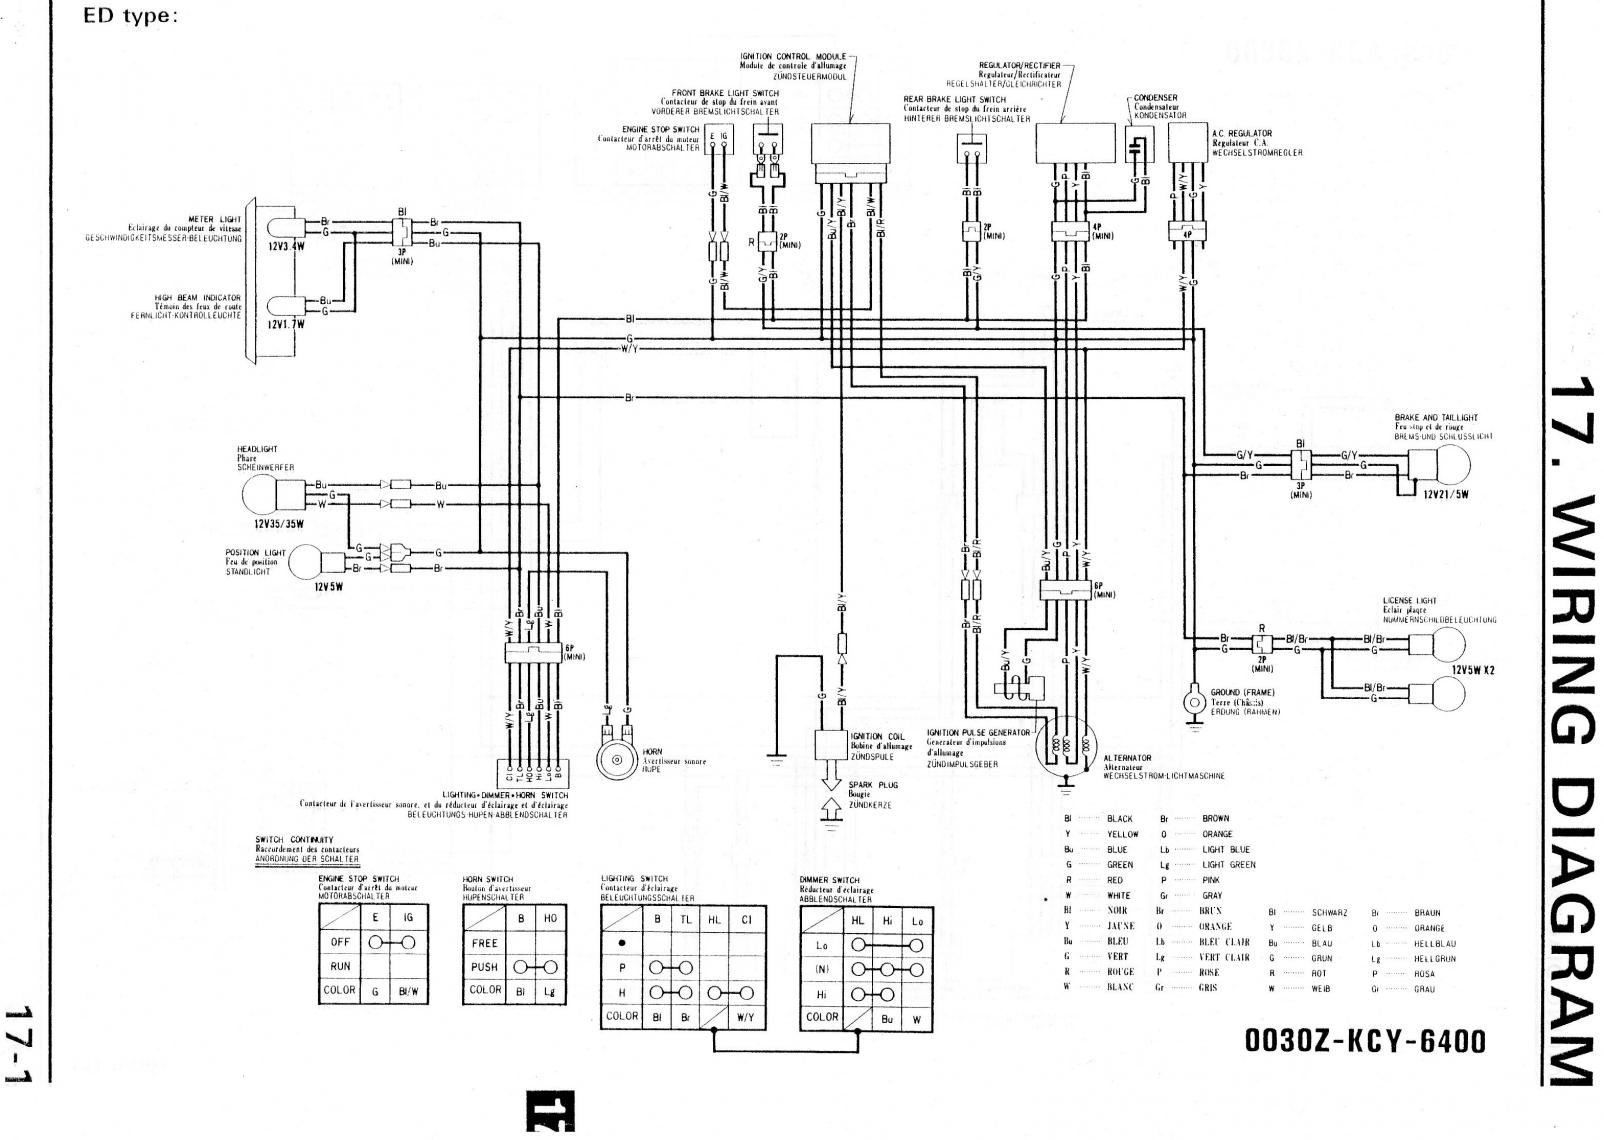 Mitsubishi Gt Engine Diagram Wiring Schematic